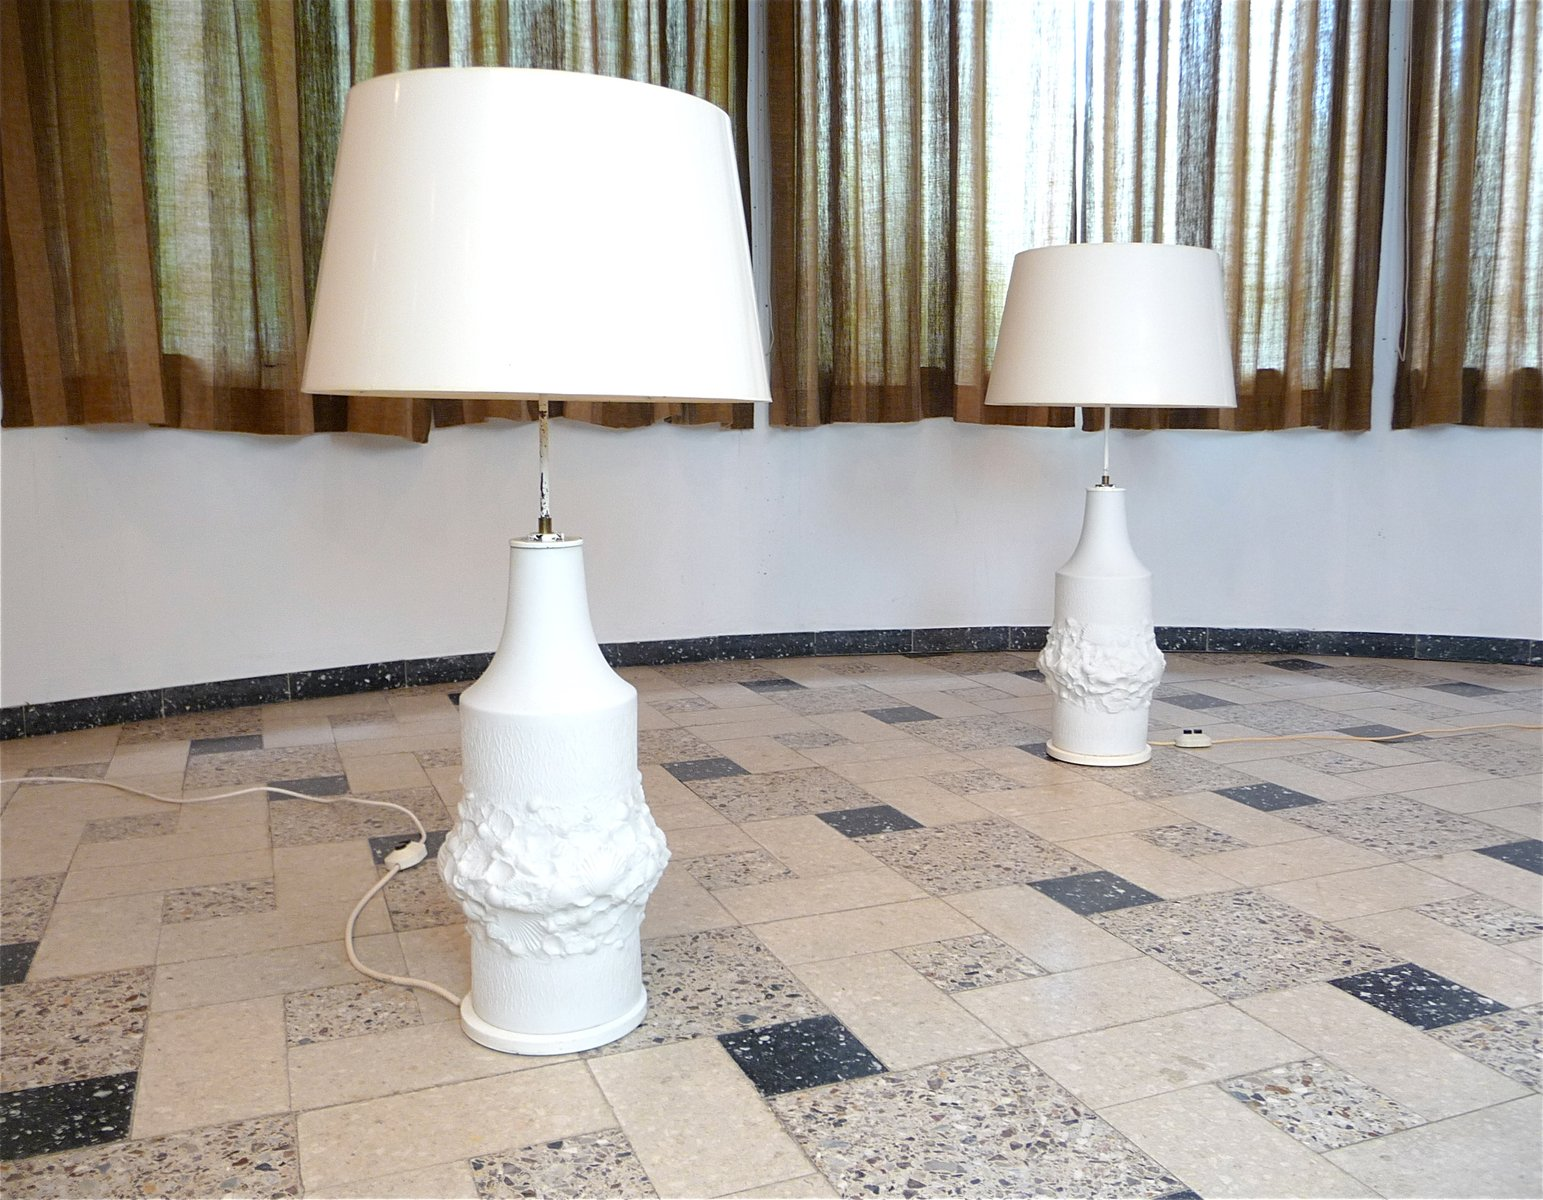 Large Bisque Relief Porcelain Table Lamps From Kaiser, 1960s, Set Of 2 For  Sale At Pamono